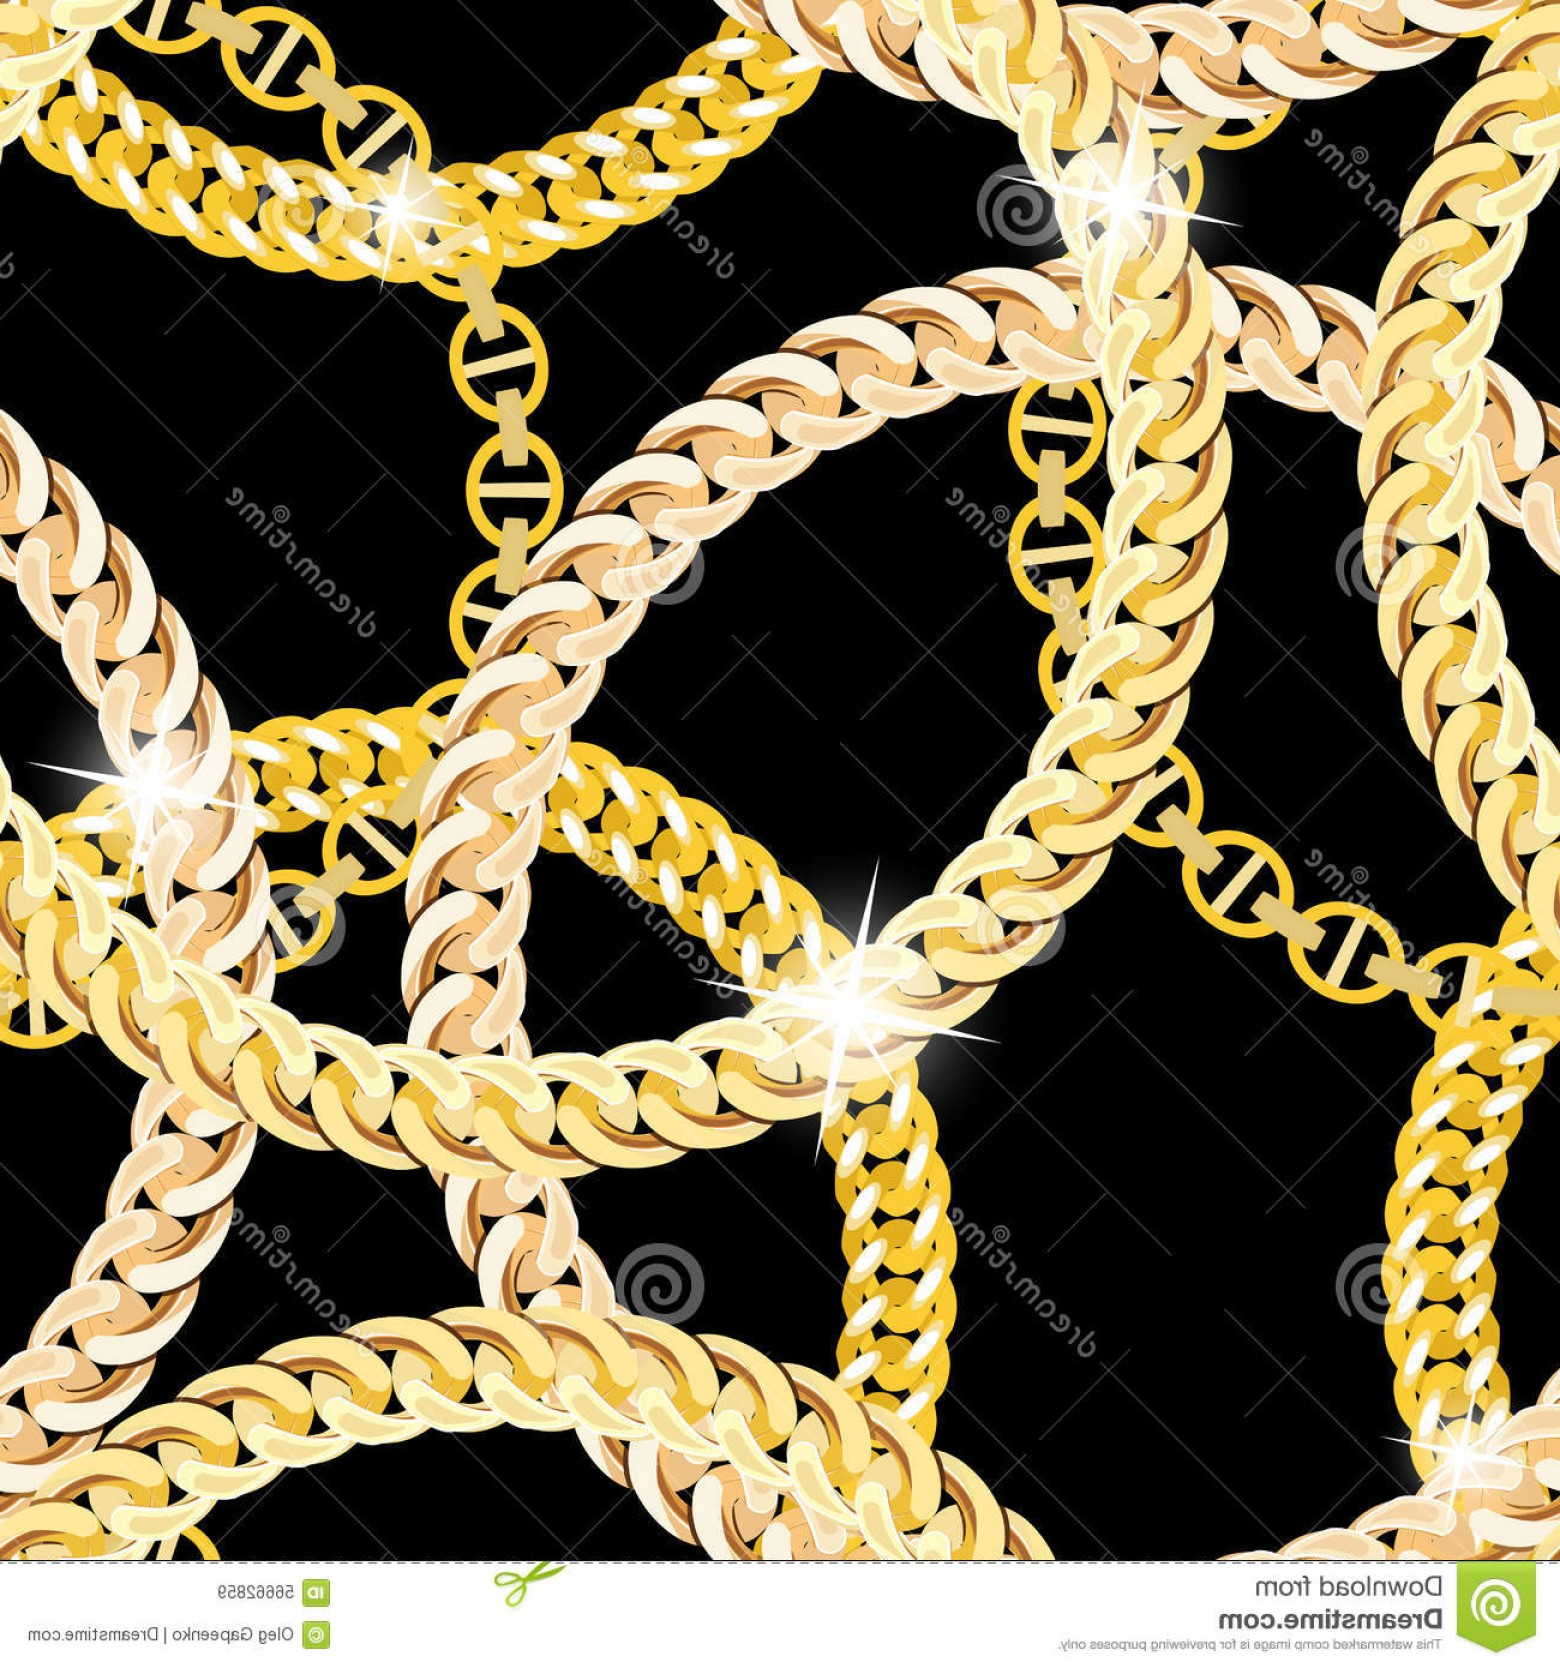 Necklace Vector Chain Grapicts: Stock Illustration Gold Chain Jewelry Seamless Pattern Background Vector Illustration Eps Image